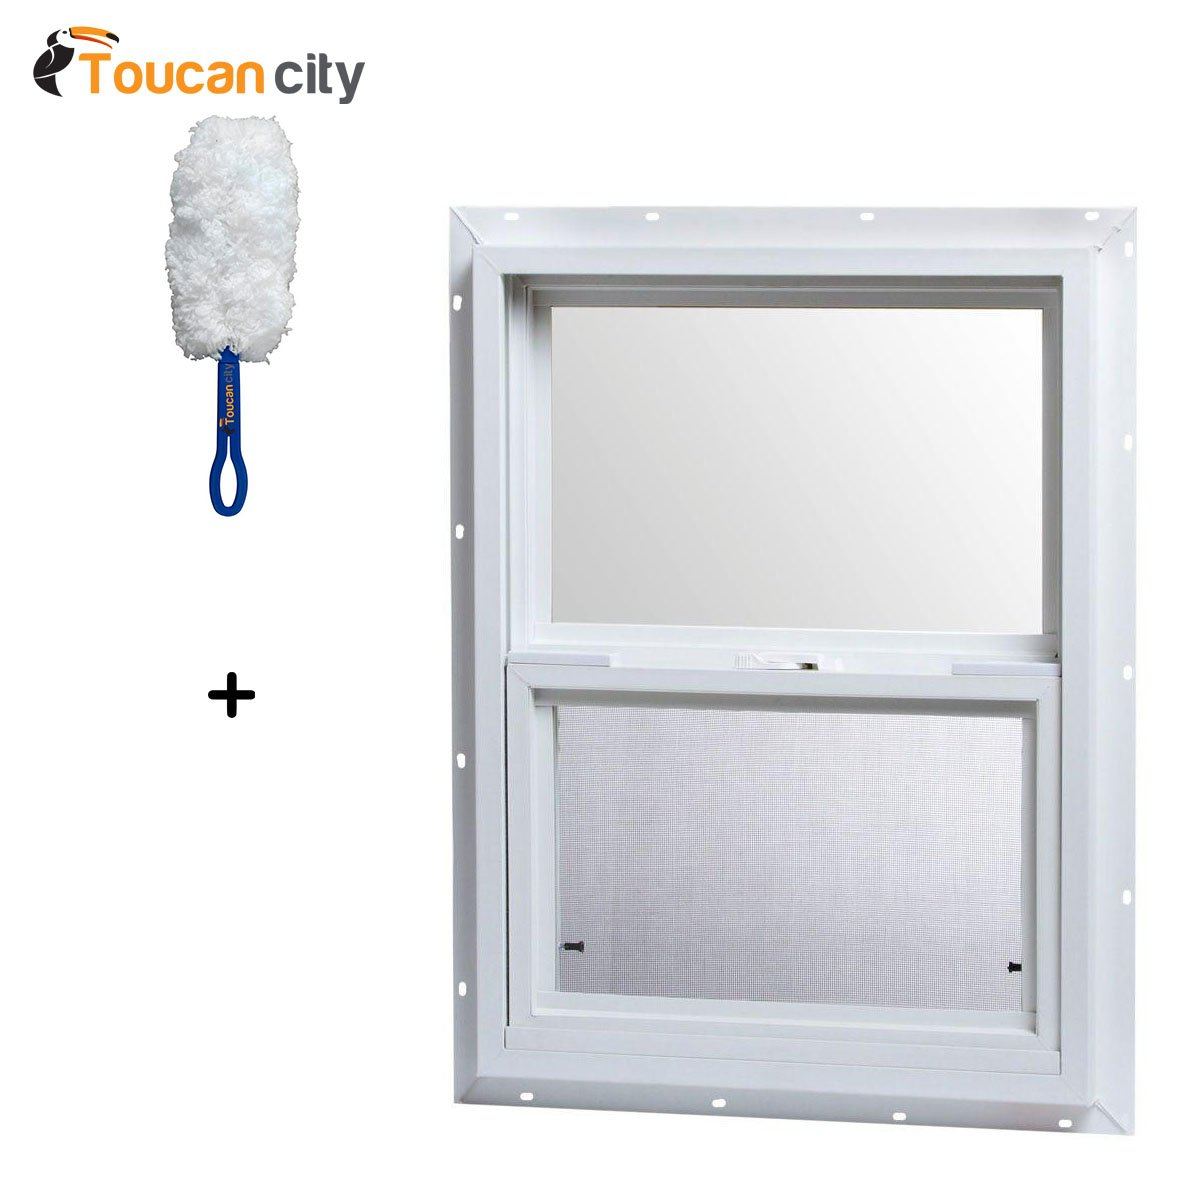 Toucan City Microfiber Dash Duster and TAFCO Windows 18 in. x 24 in. Single Hung Vinyl Window - White VSH1824OP